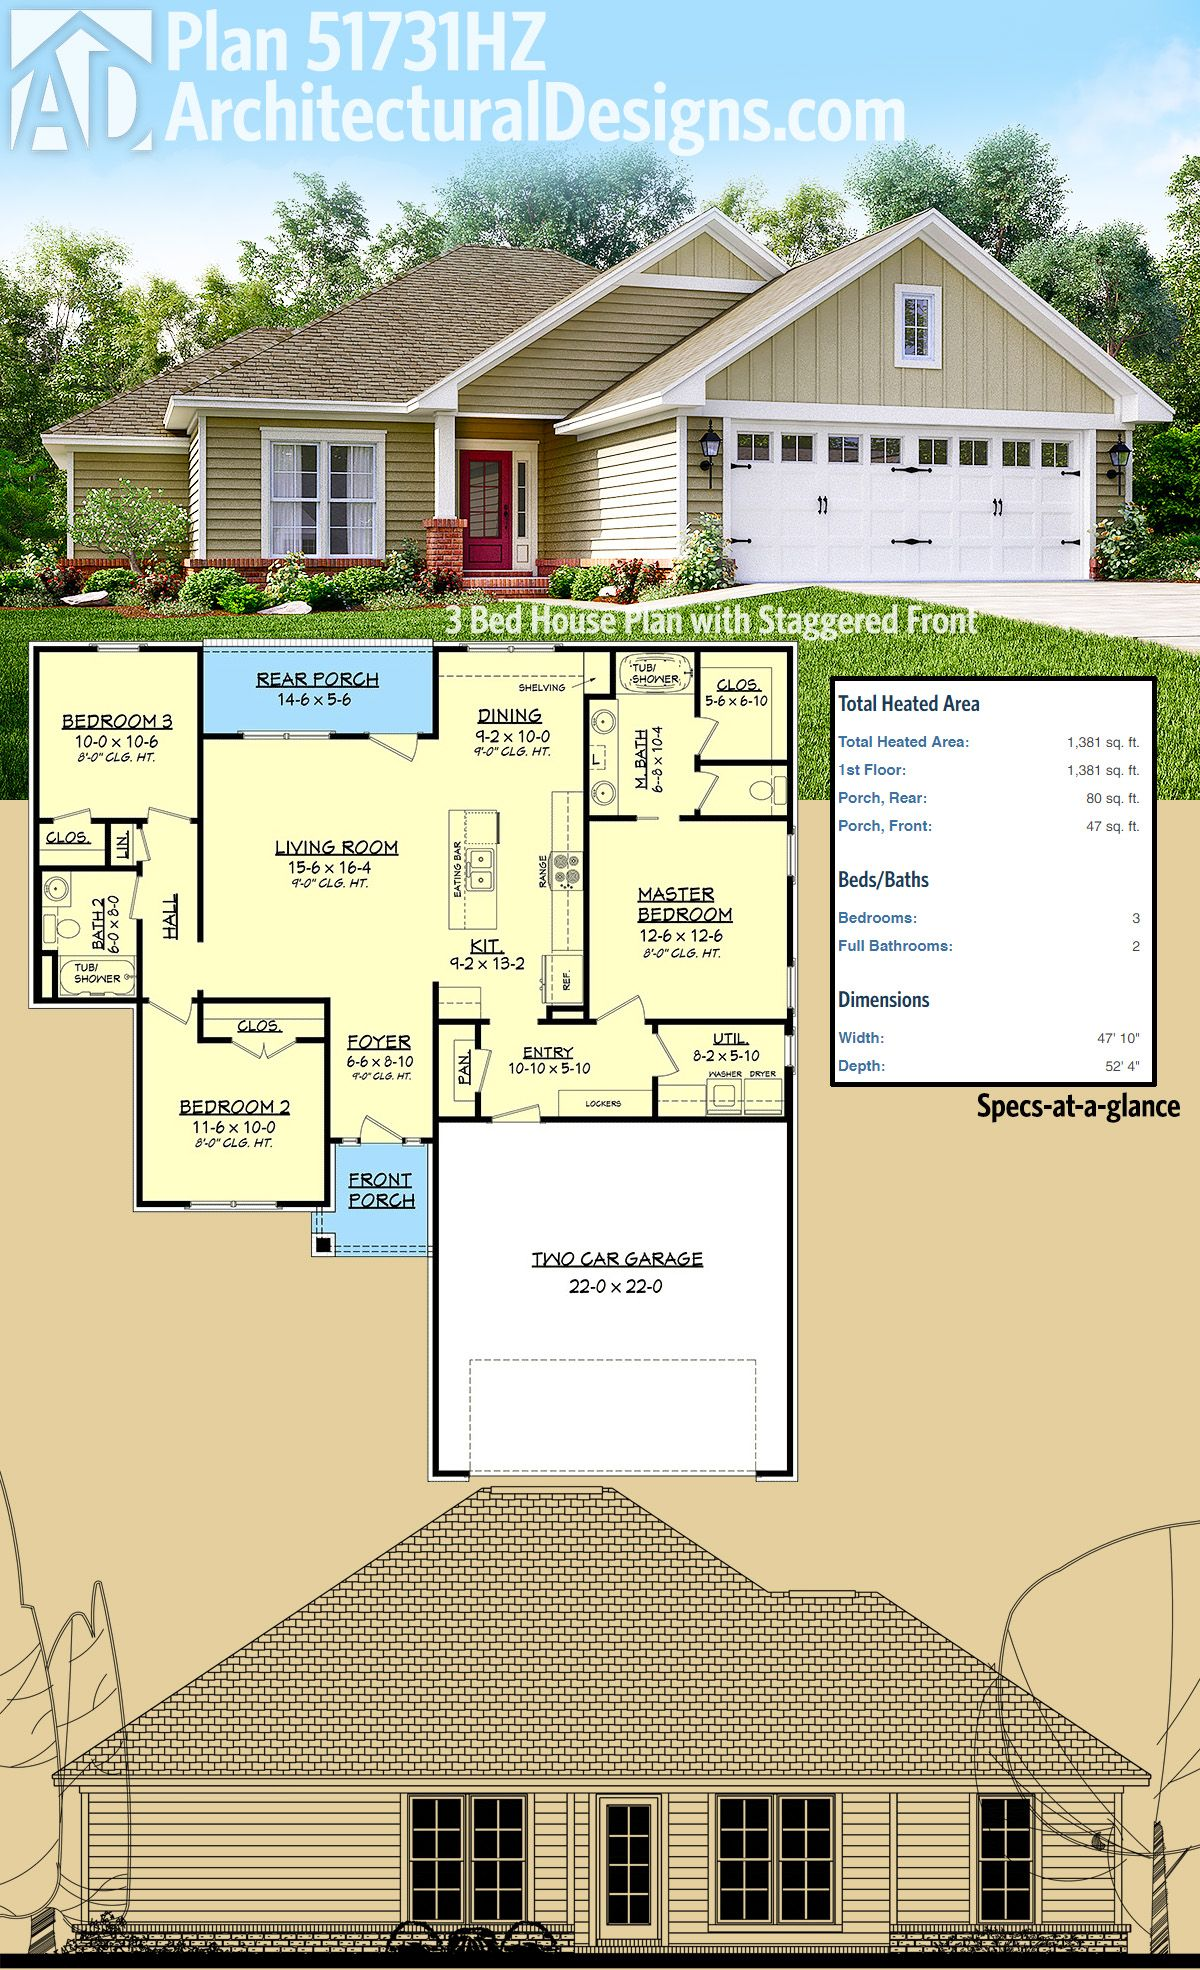 Architectural designs 3 bed house plan 51731hz has a dynamic staggered front and a covered porch in back under 1400 square feet of heated living space